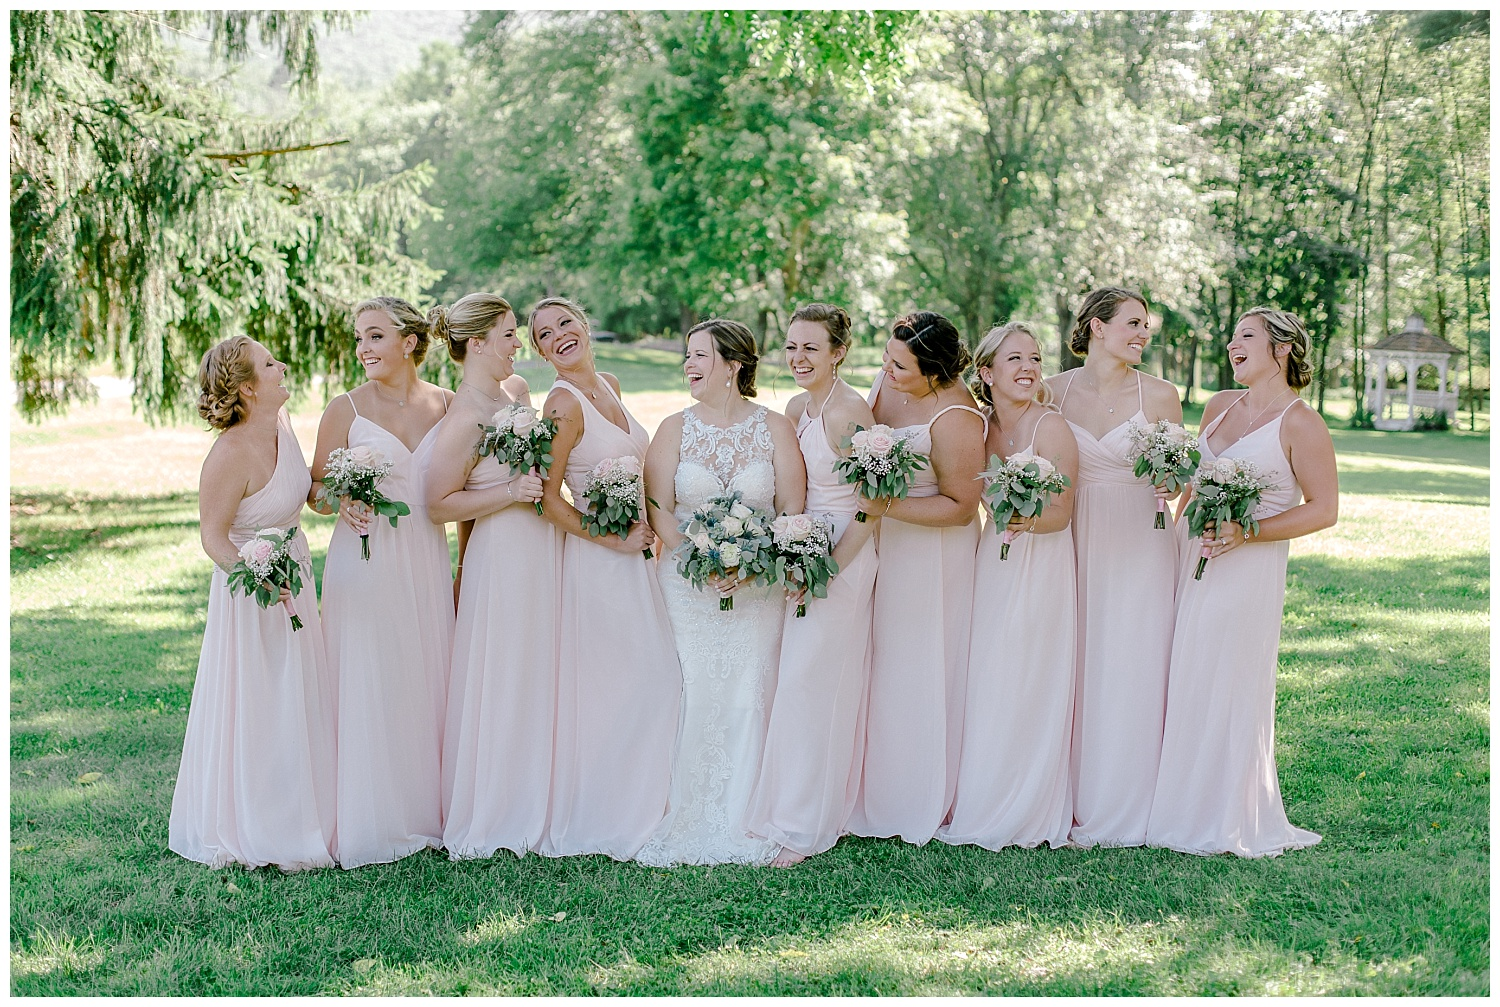 Navy and Blush pink inspired summertime whitewoods wedding in Northeastern Pennsylvania NEPA wapwallopen wedding venue by  PA based wedding and lifestyle photographer Lytle photography_0029.jpg